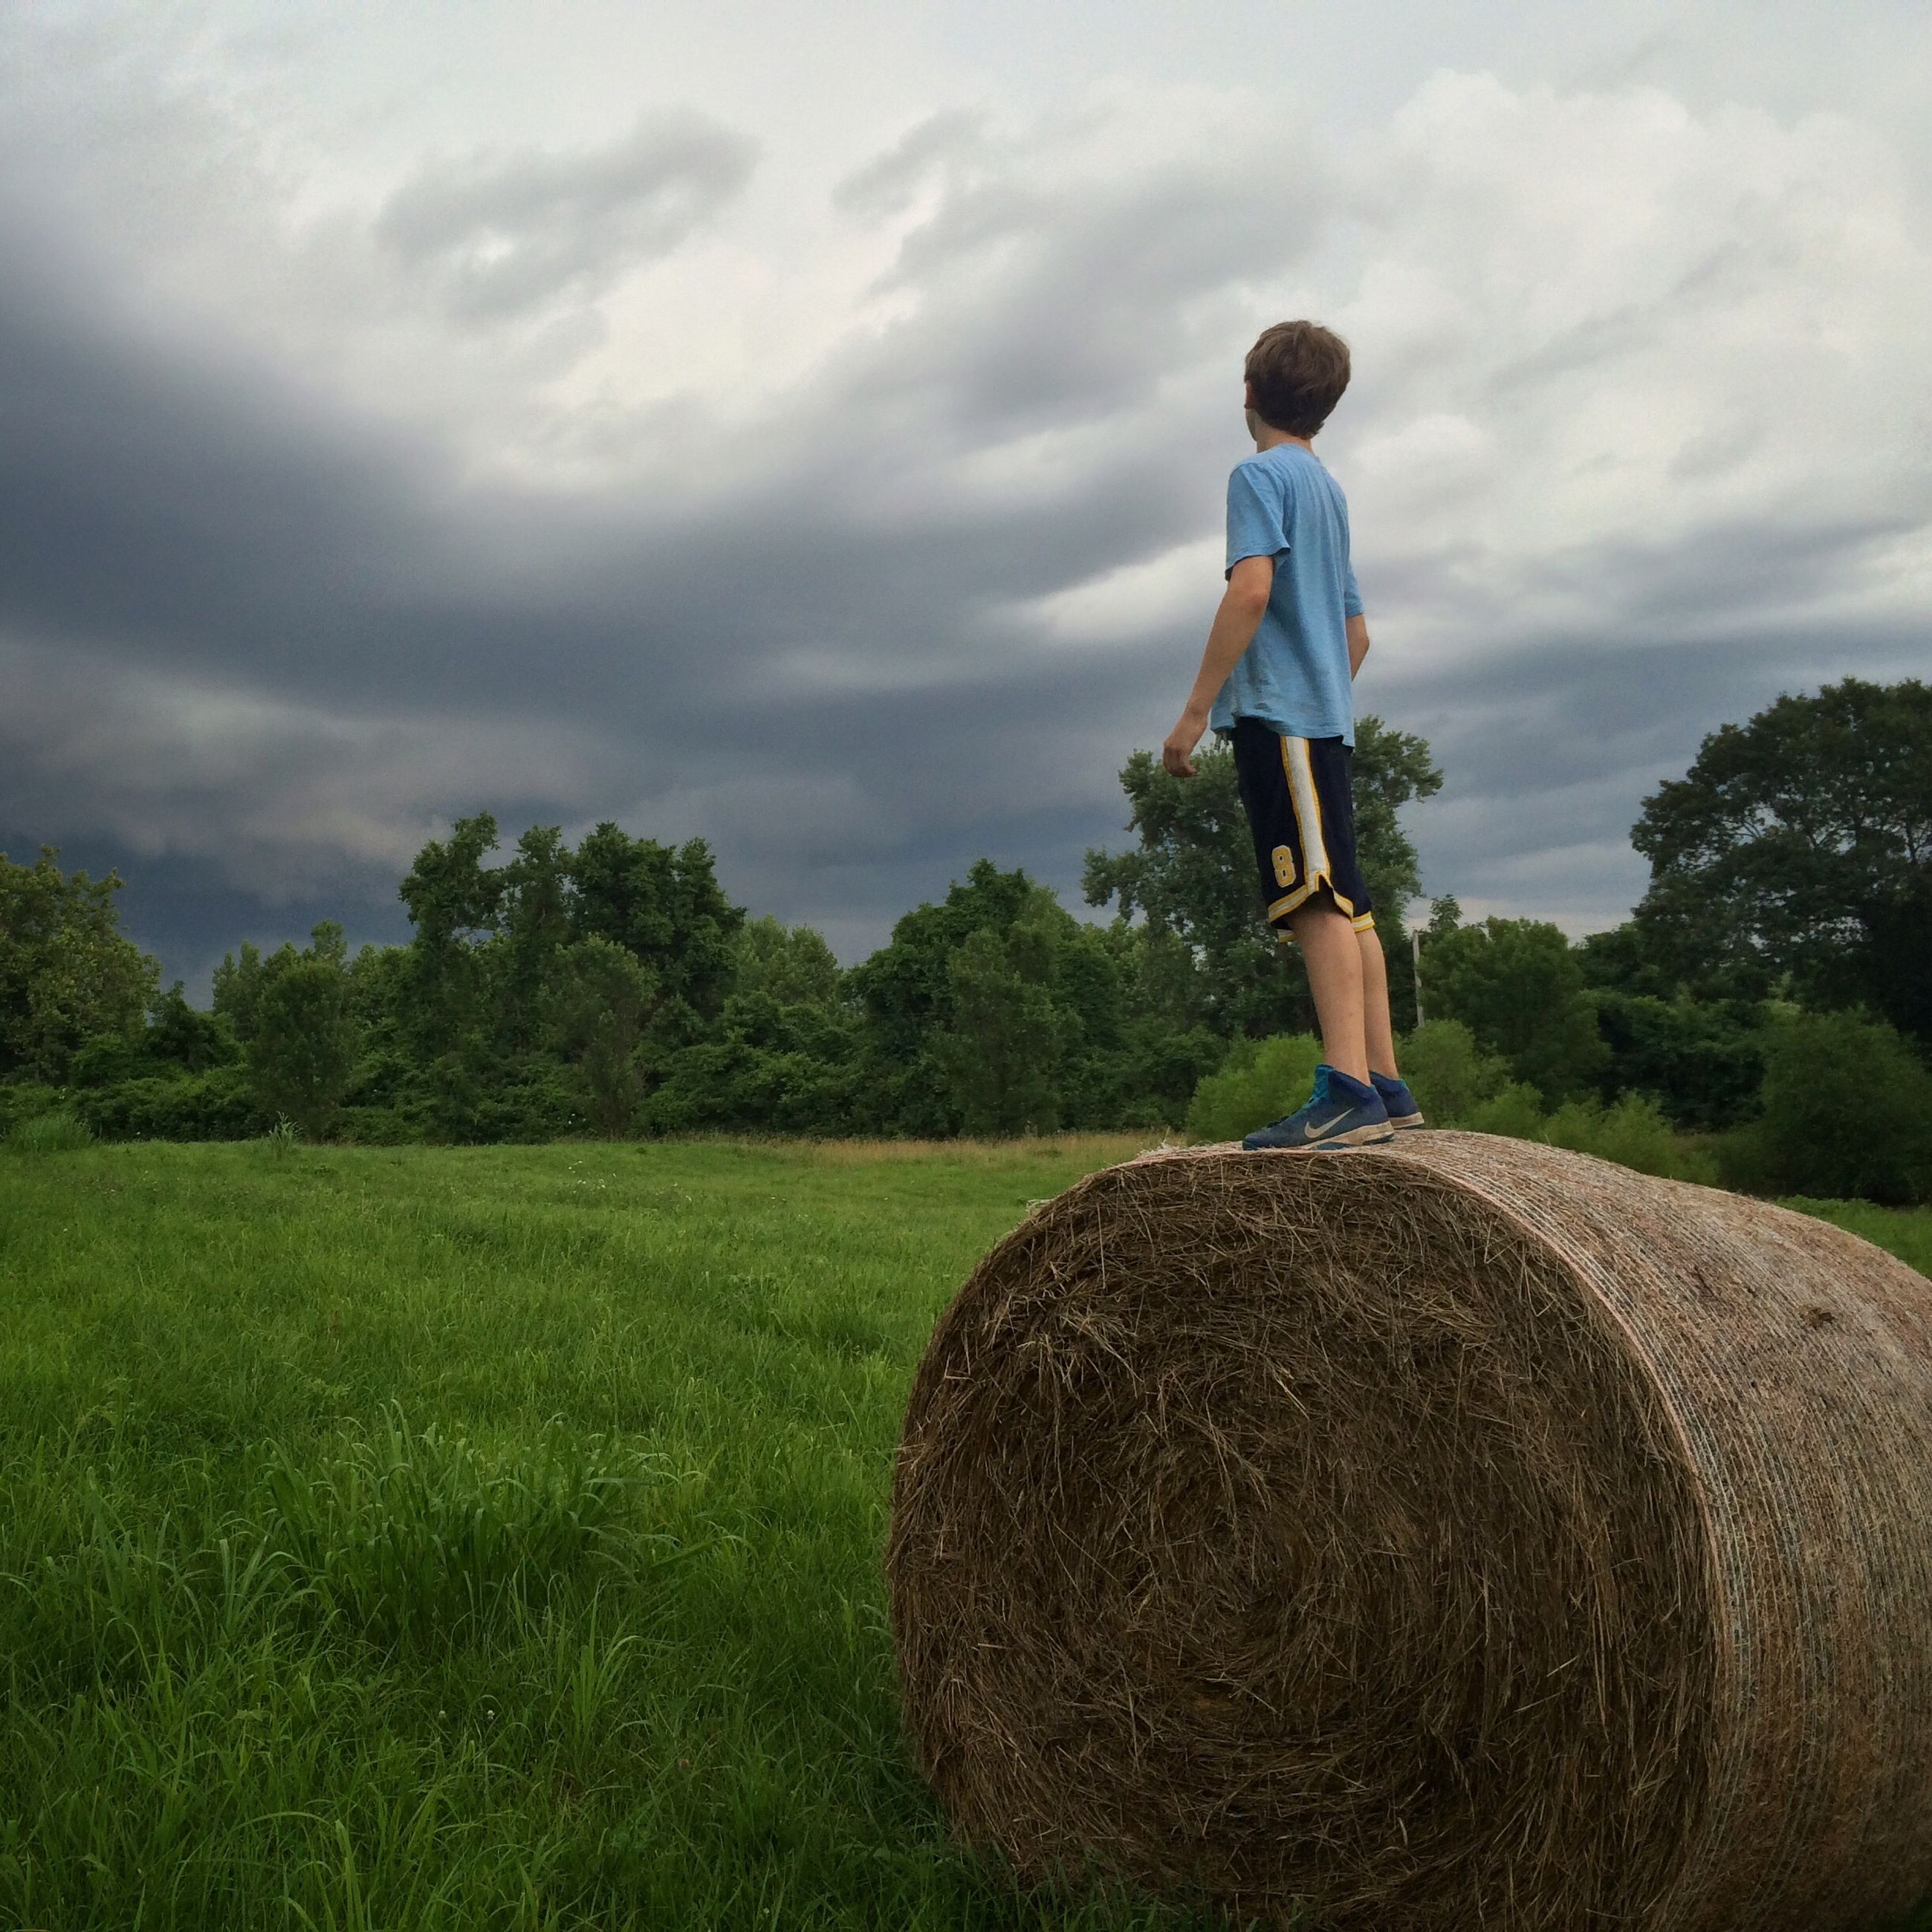 sky, lifestyles, grass, leisure activity, full length, cloud - sky, casual clothing, field, standing, rear view, tree, landscape, cloudy, cloud, childhood, men, green color, grassy